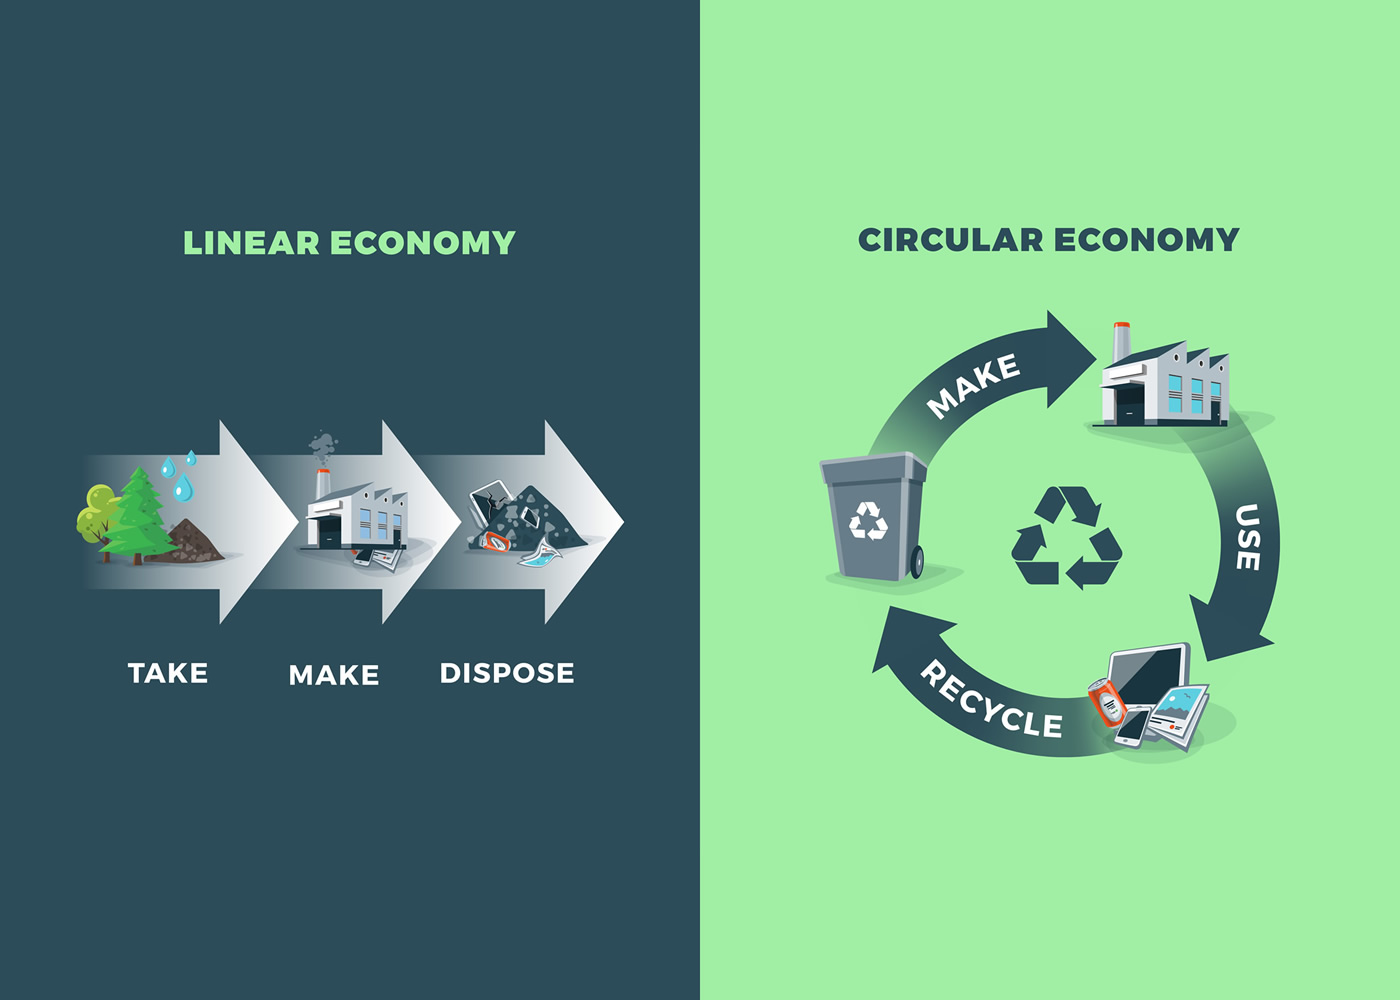 naem-2018-qanda-comparing-circular-linear-economy-showing-product-700x500